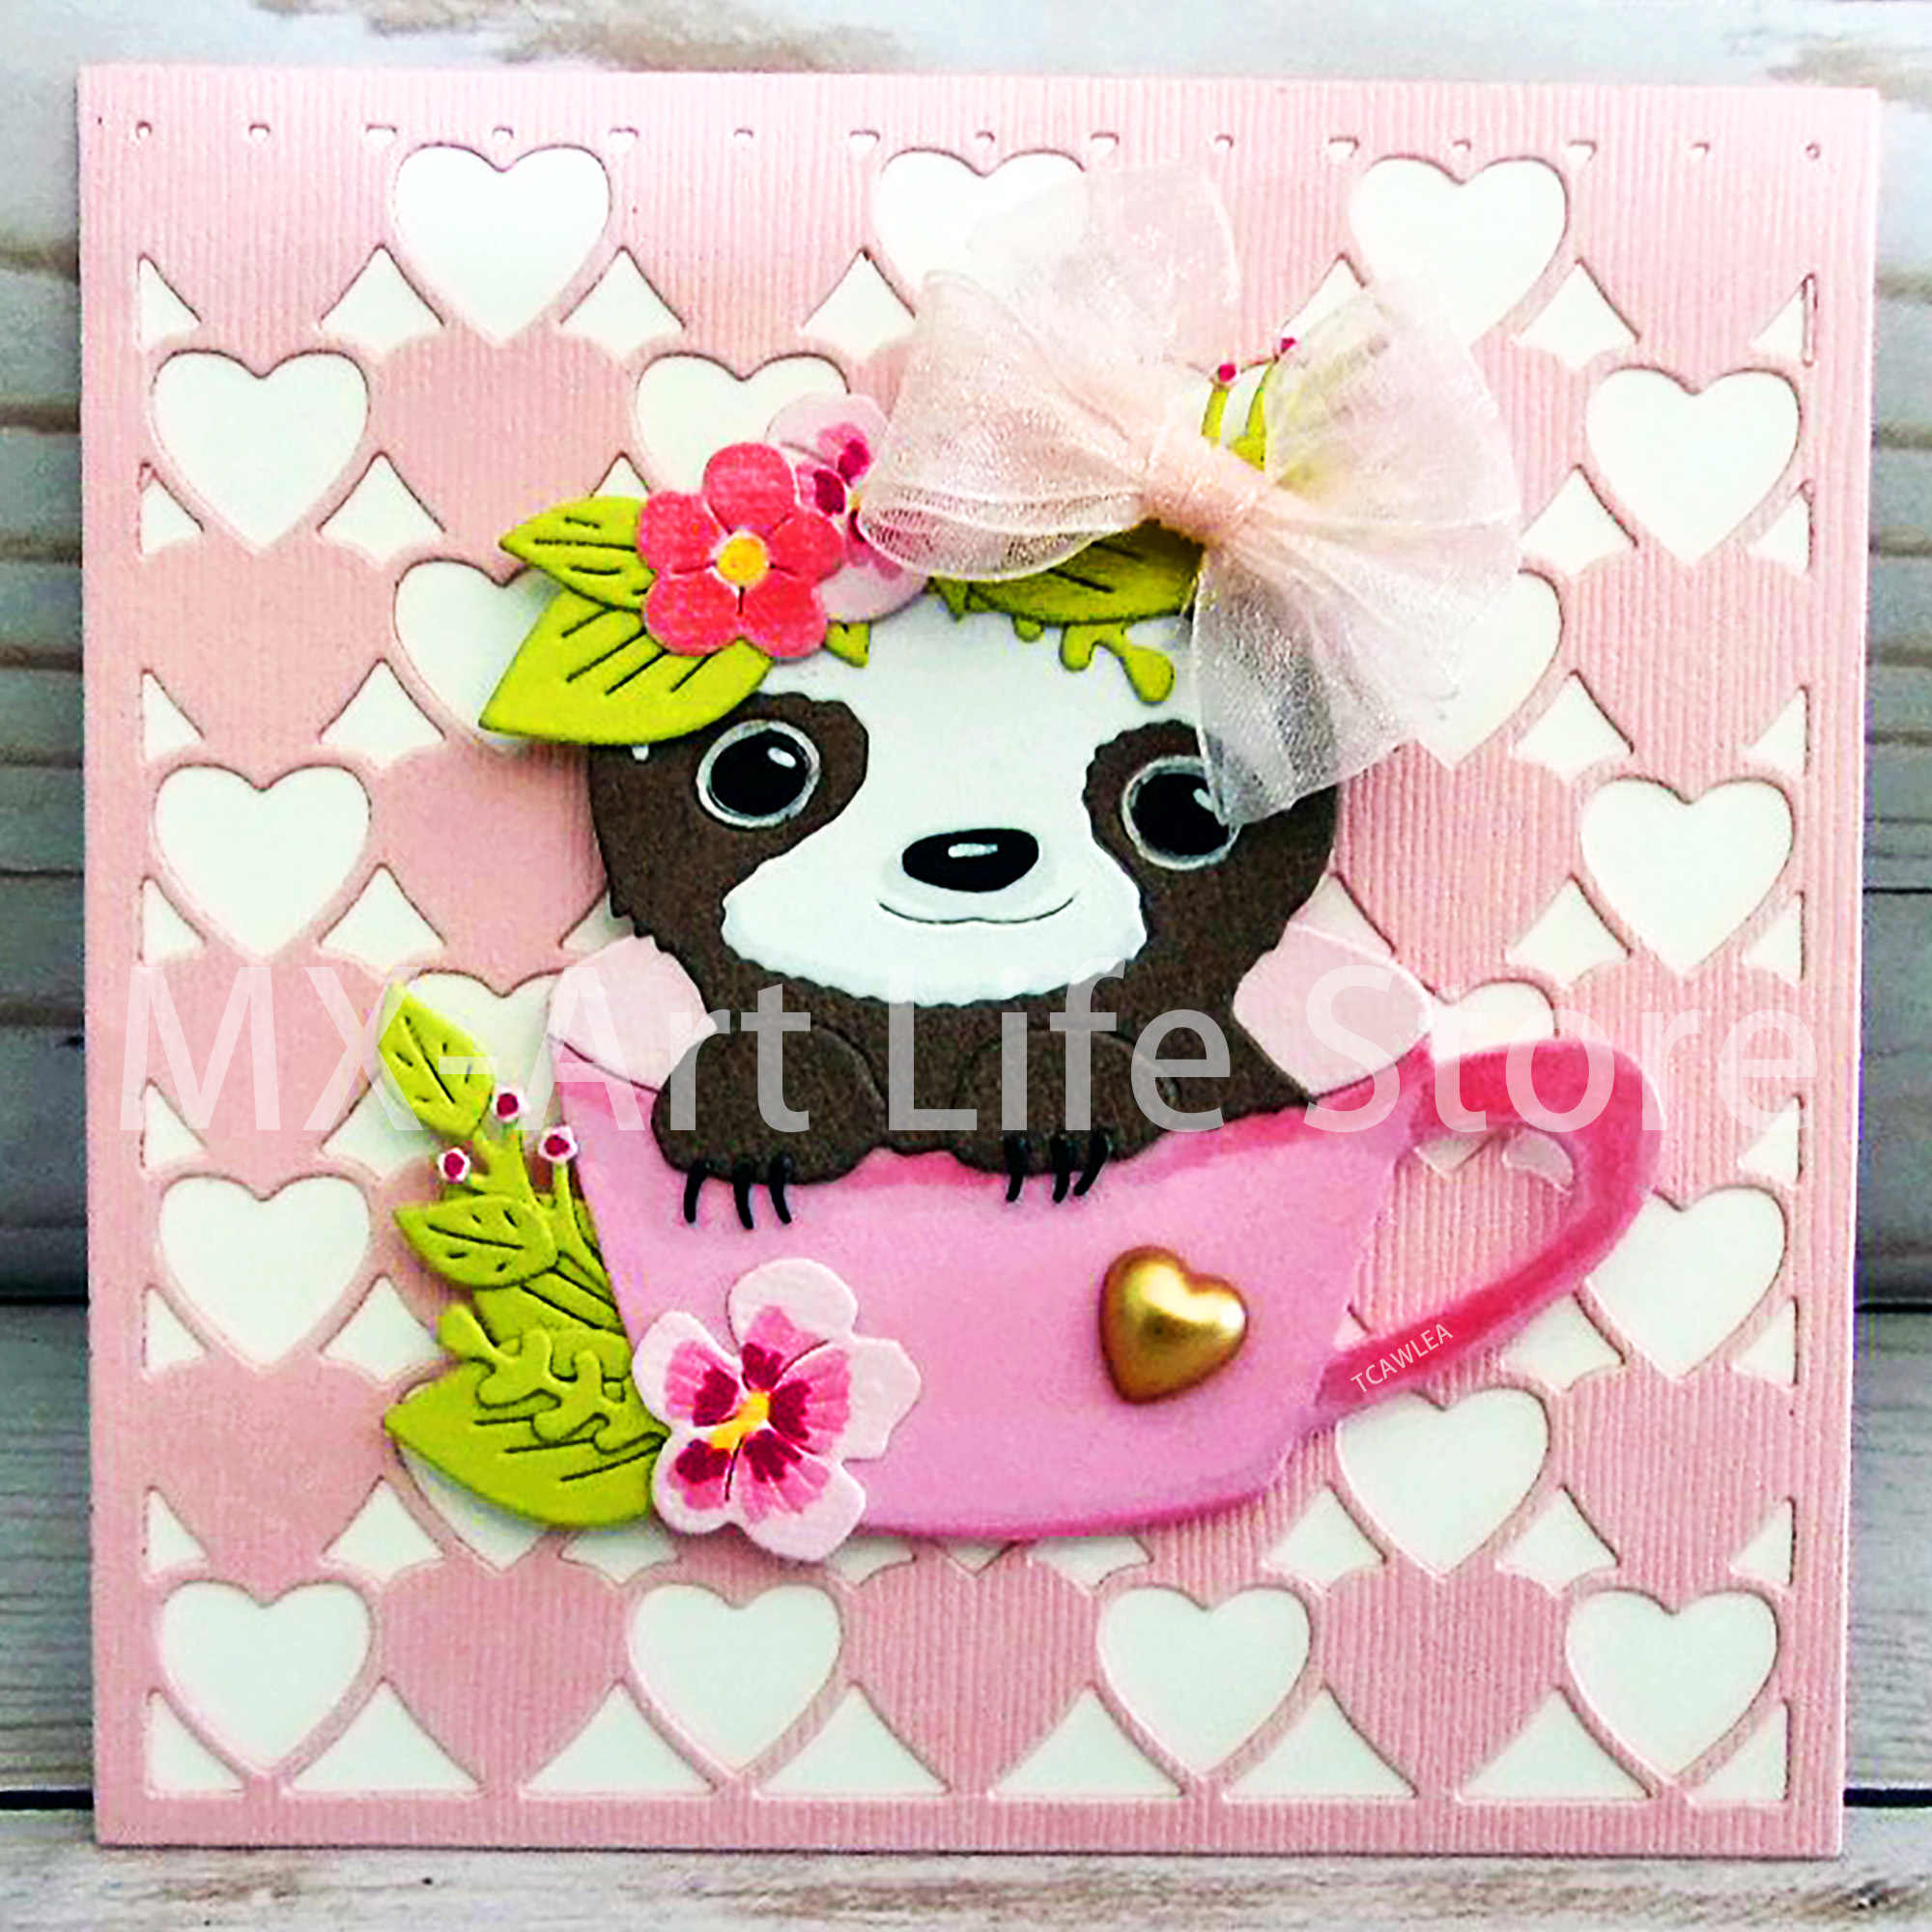 2020 New Metal Cutting Dies and Scrapbooking For Paper Making Flower and Animals